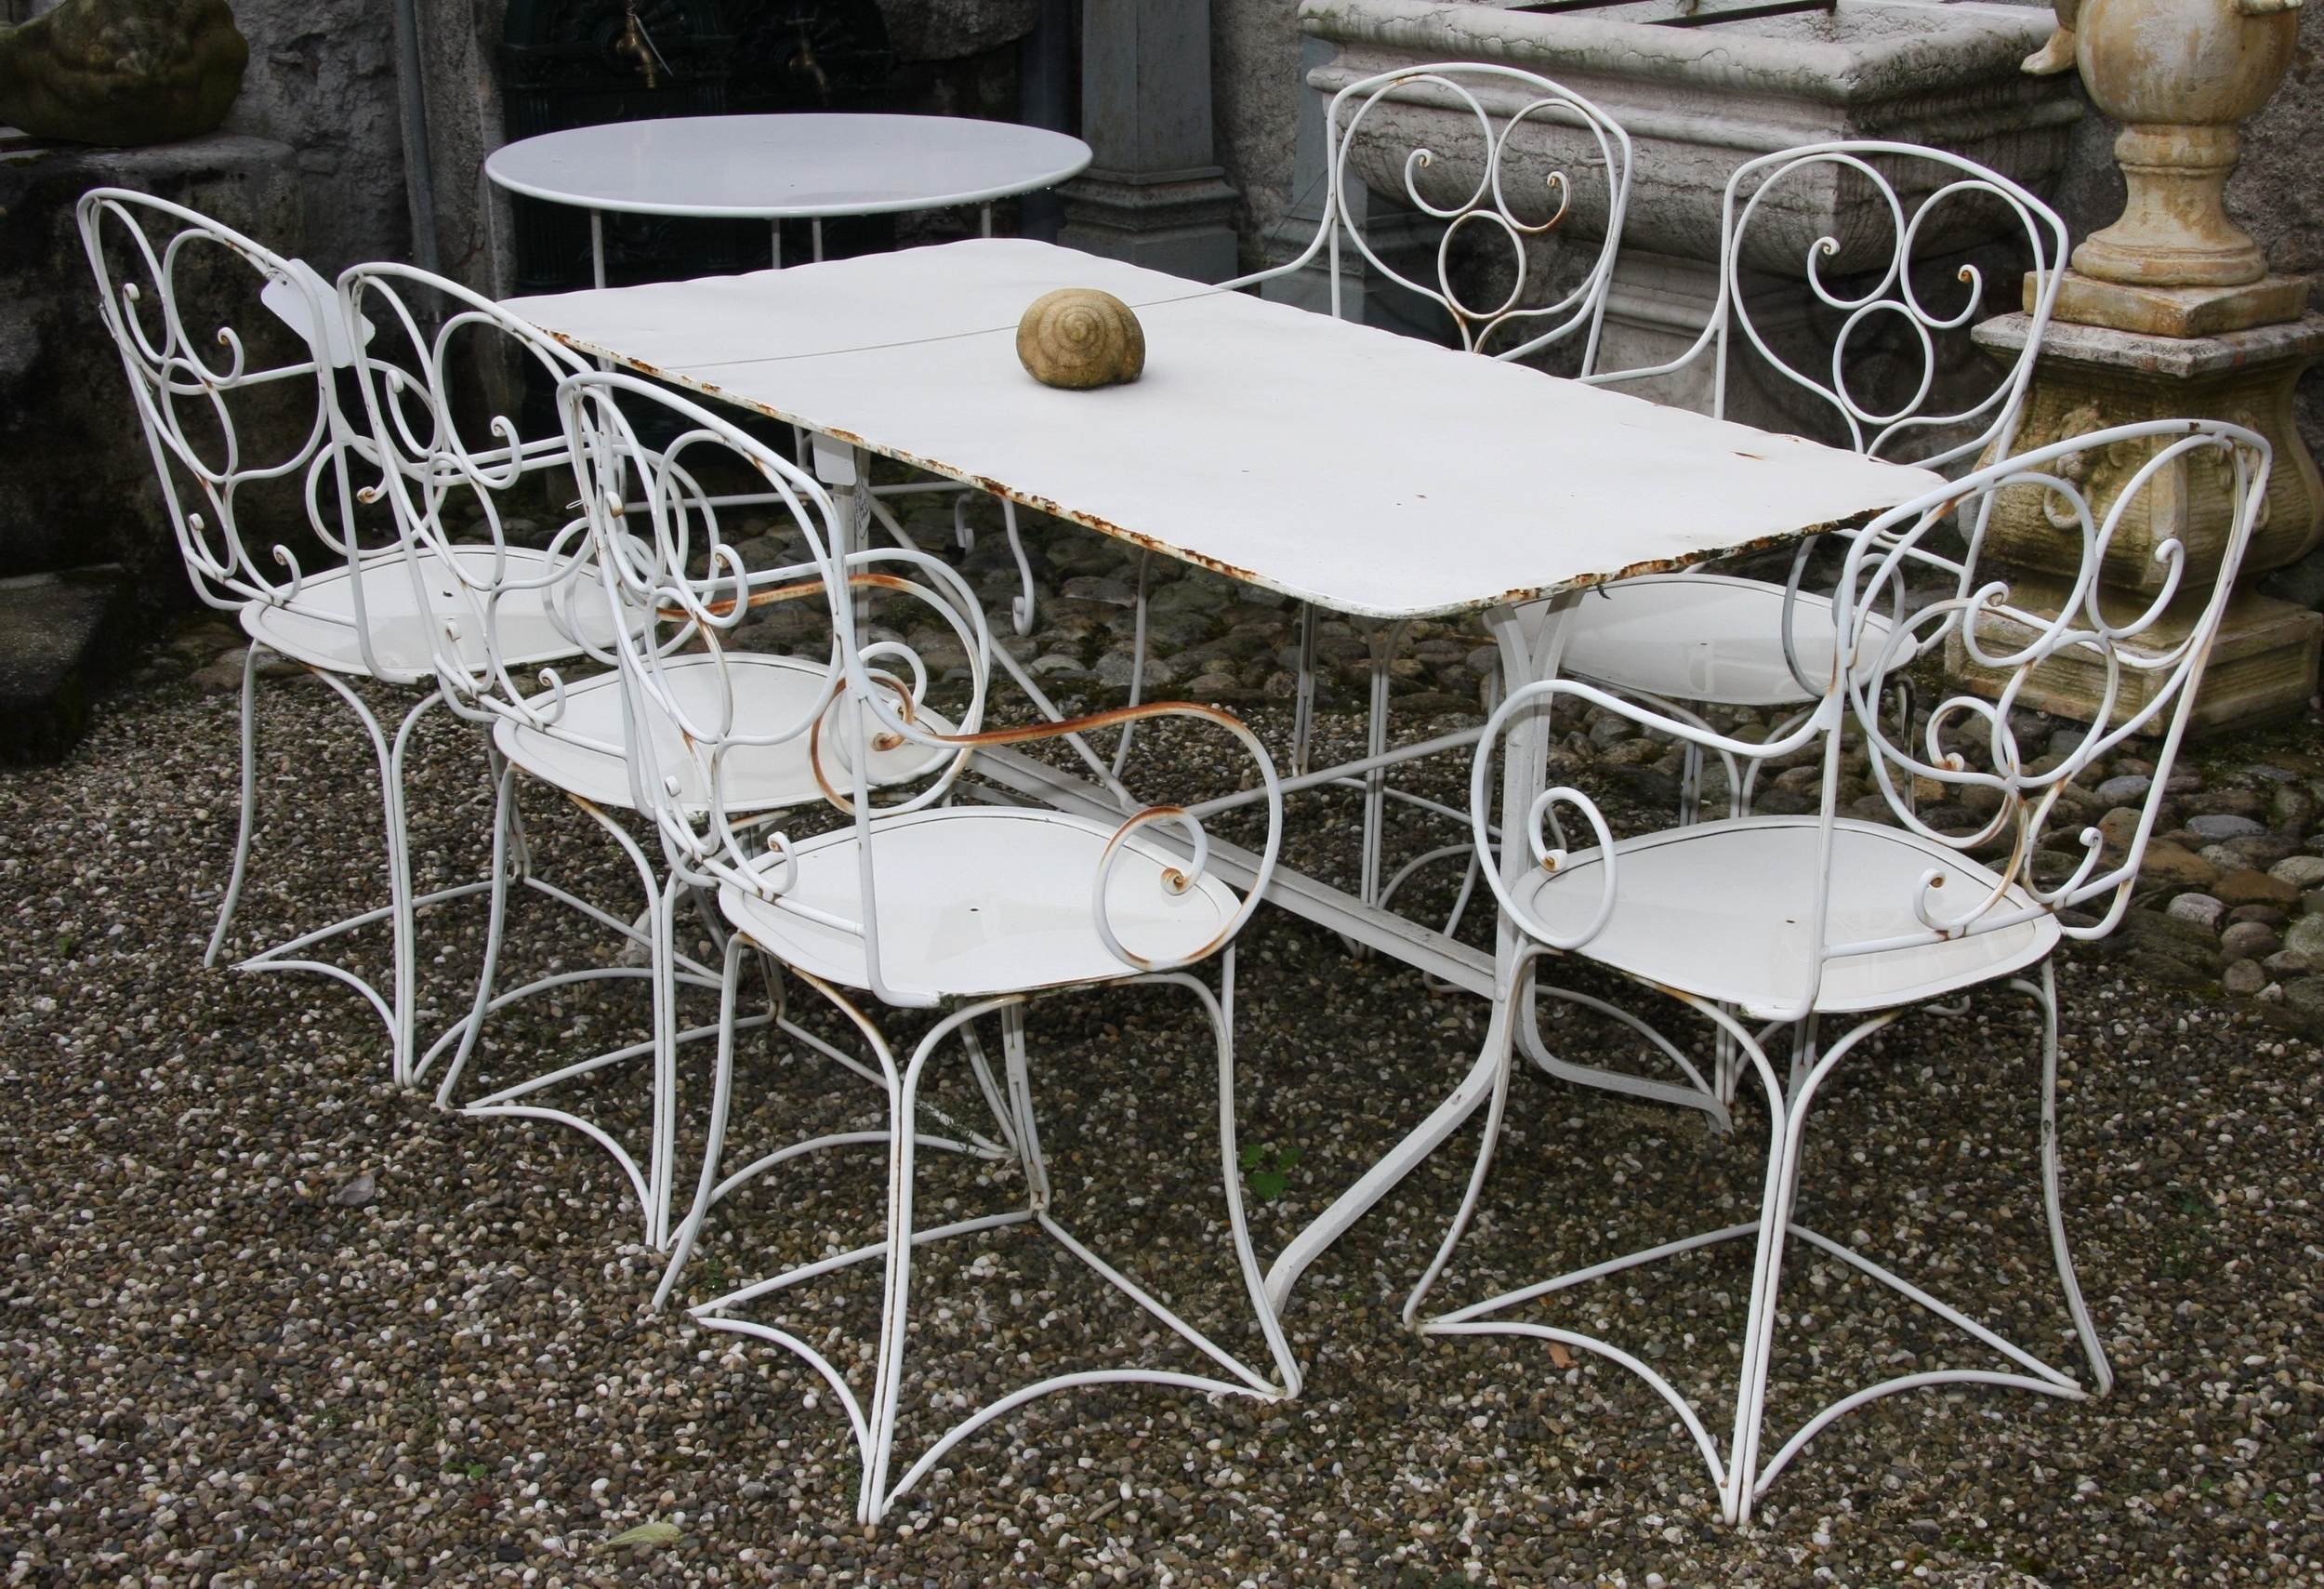 Salon De Jardin Intermarché Beau Stock Stunning Table De Jardin Ronde Le Bon Coin Ideas Awesome Interior